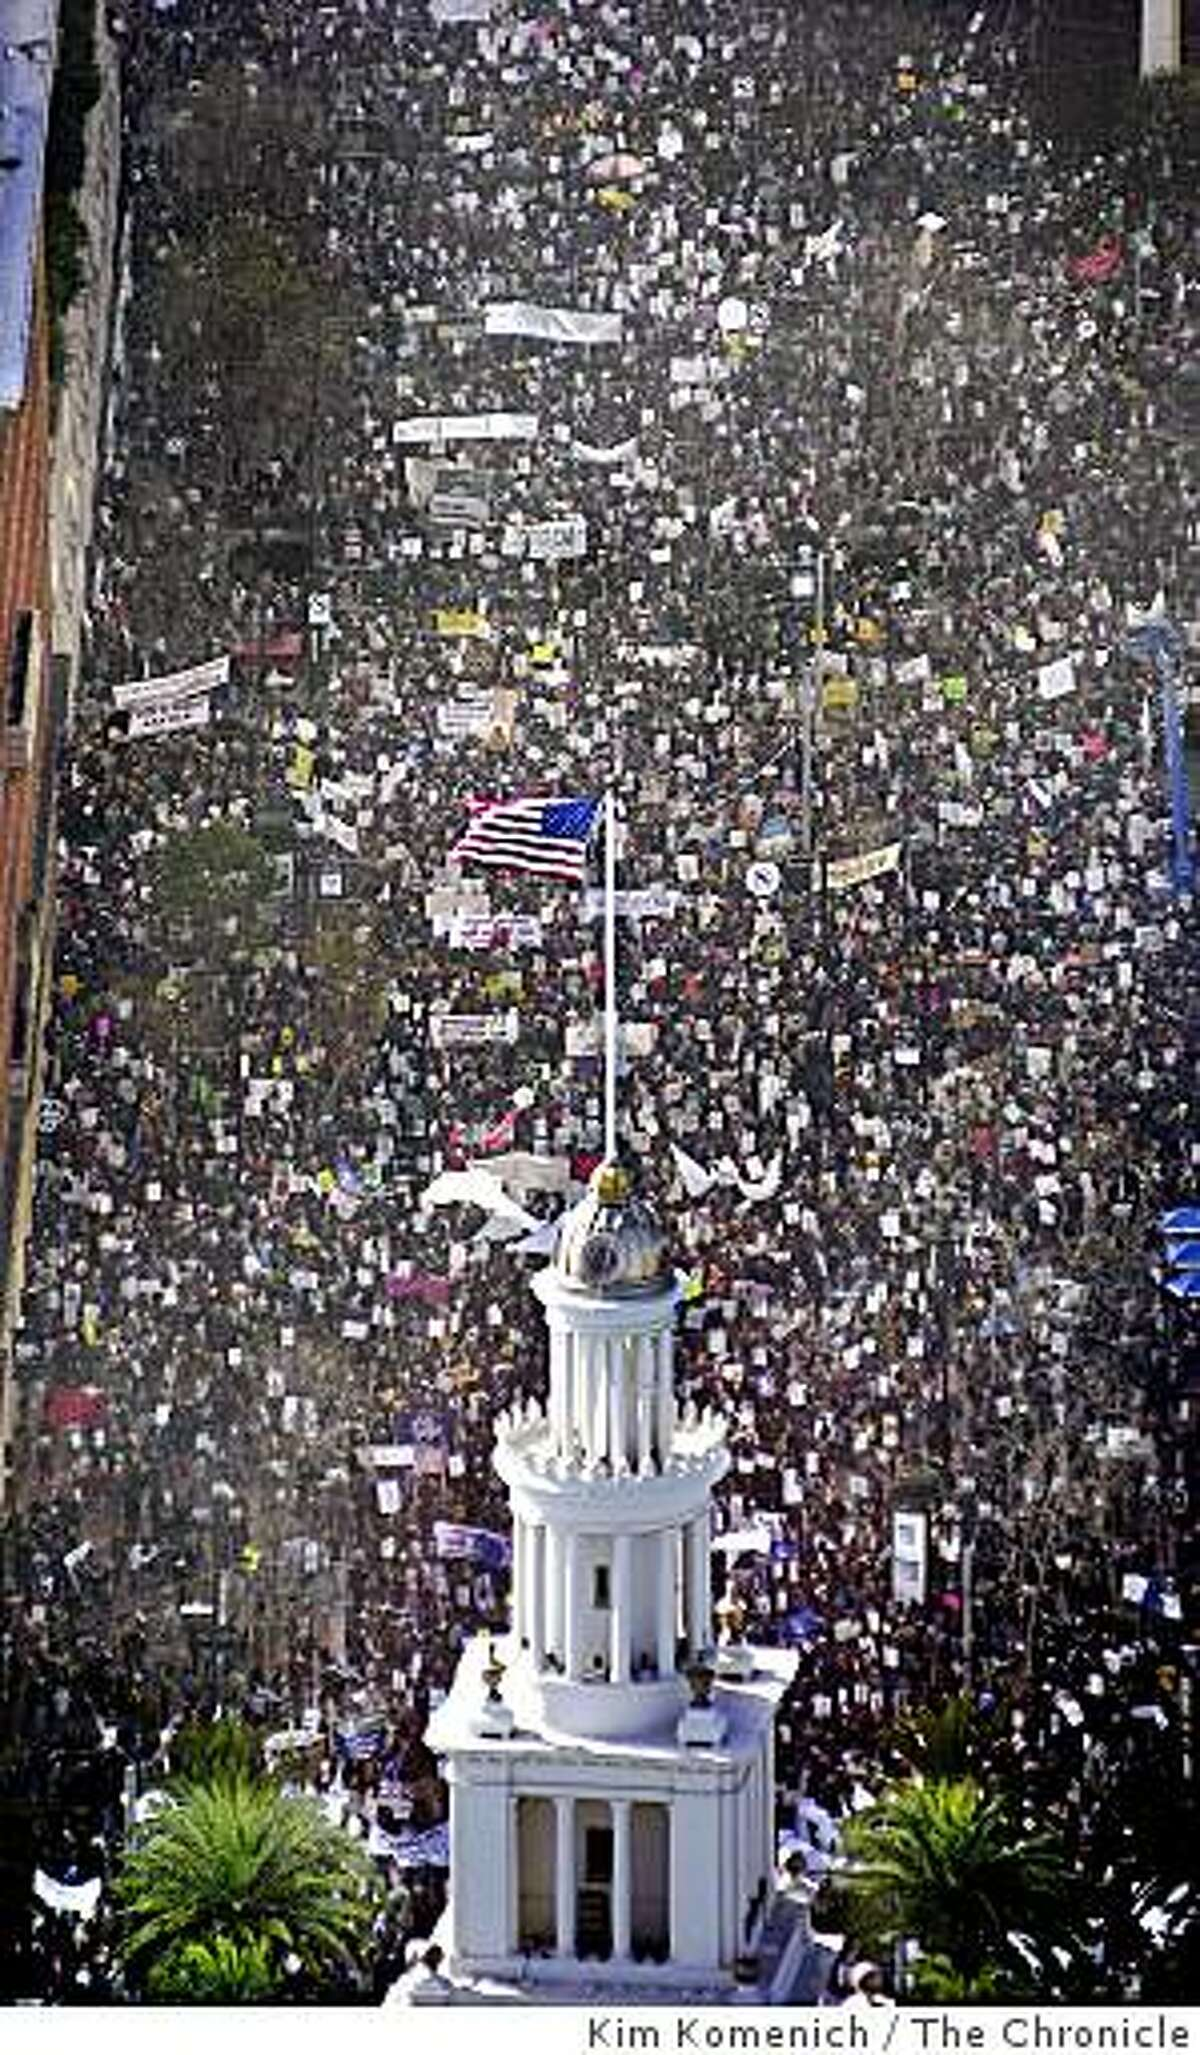 Aerial photos of tens of thousands of anti-war demonstrators as they march from Justin Herman Plaza to the S.F. Civic Center to protest the U.S. policy on Iraq (and a few other things).